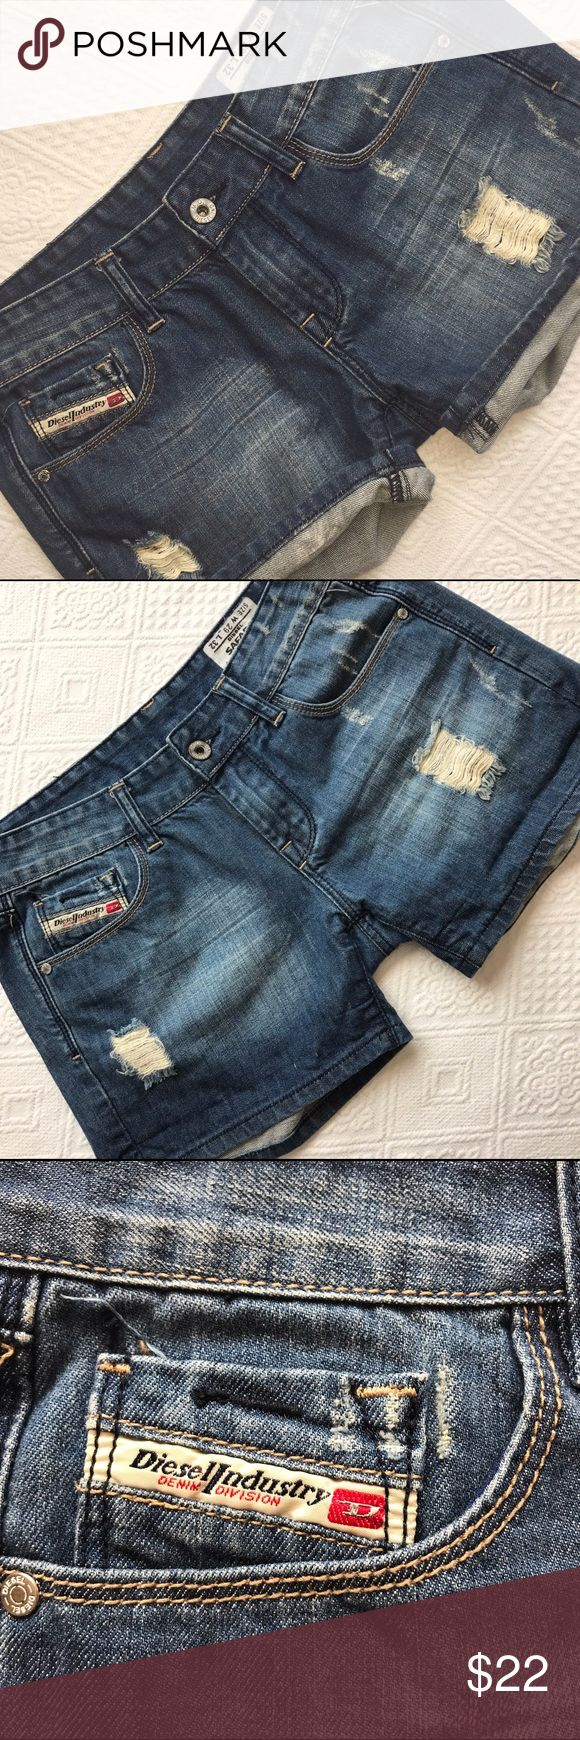 Diesel Industry W  size 29 distressed Jean shorts Distressed Jean shorts made by Diesel Industry size W 29 Diesel Shorts Jean Shorts